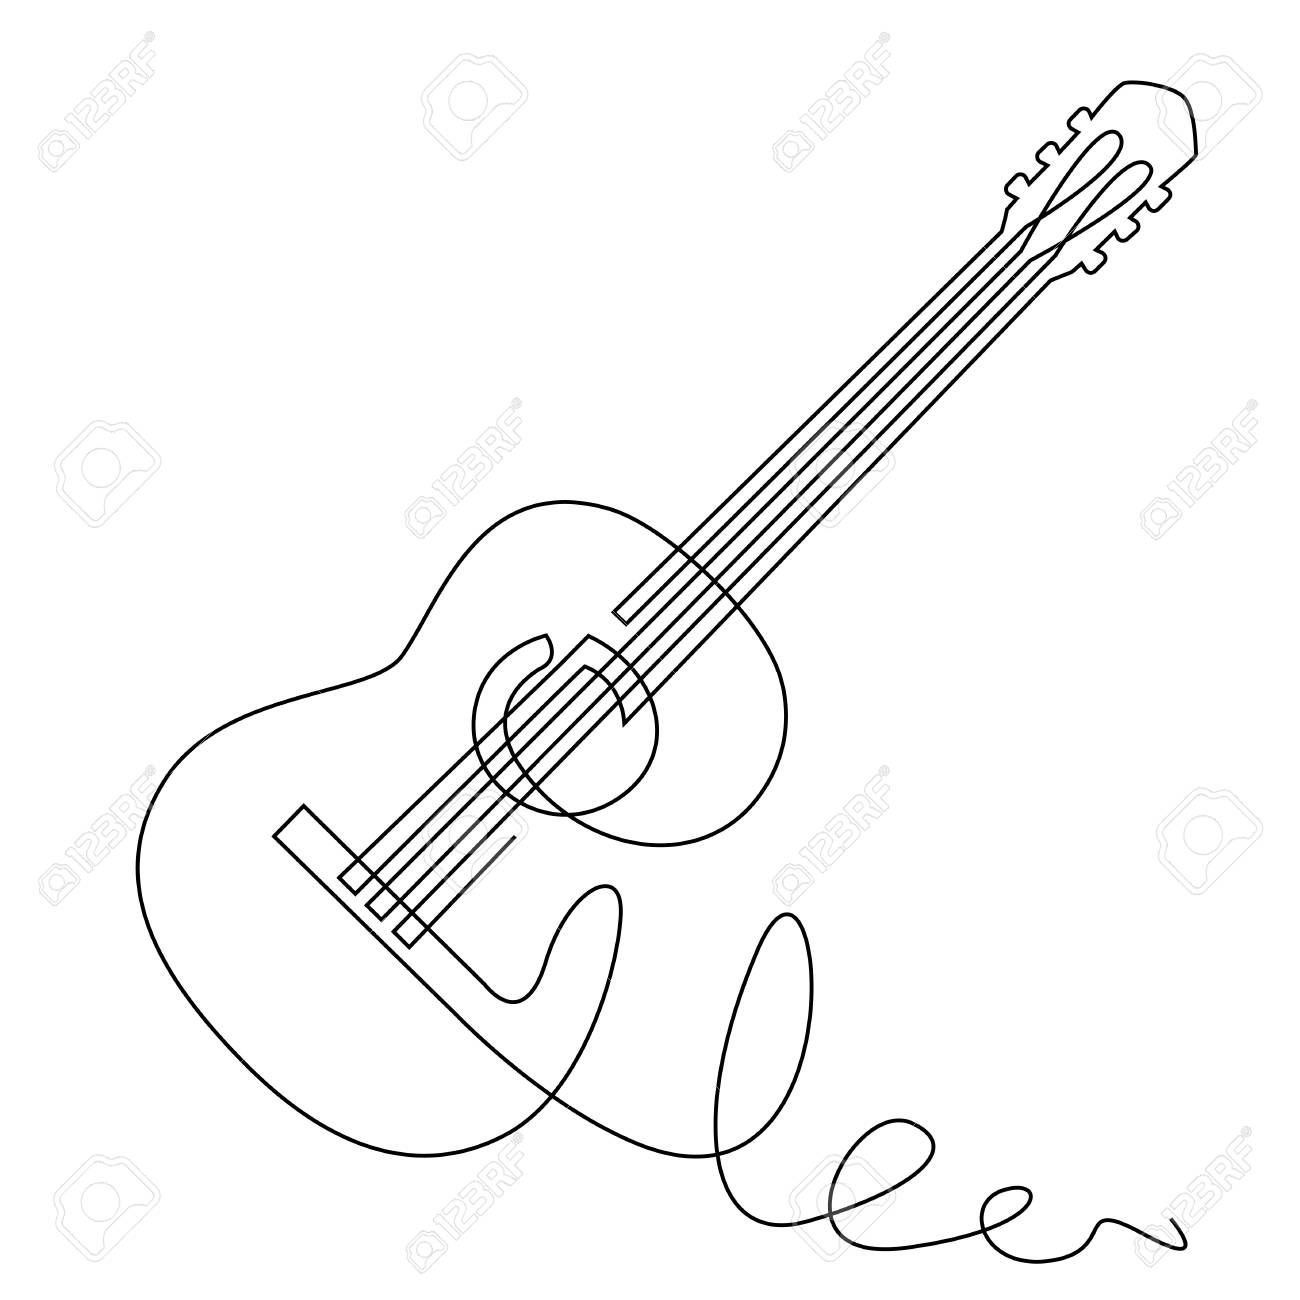 Continuous Line Drawing Of Acoustic Guitar Vector Musical Instrument For Decoration Design Invitation Jazz Fe Line Drawing Line Art Drawings Line Art Vector